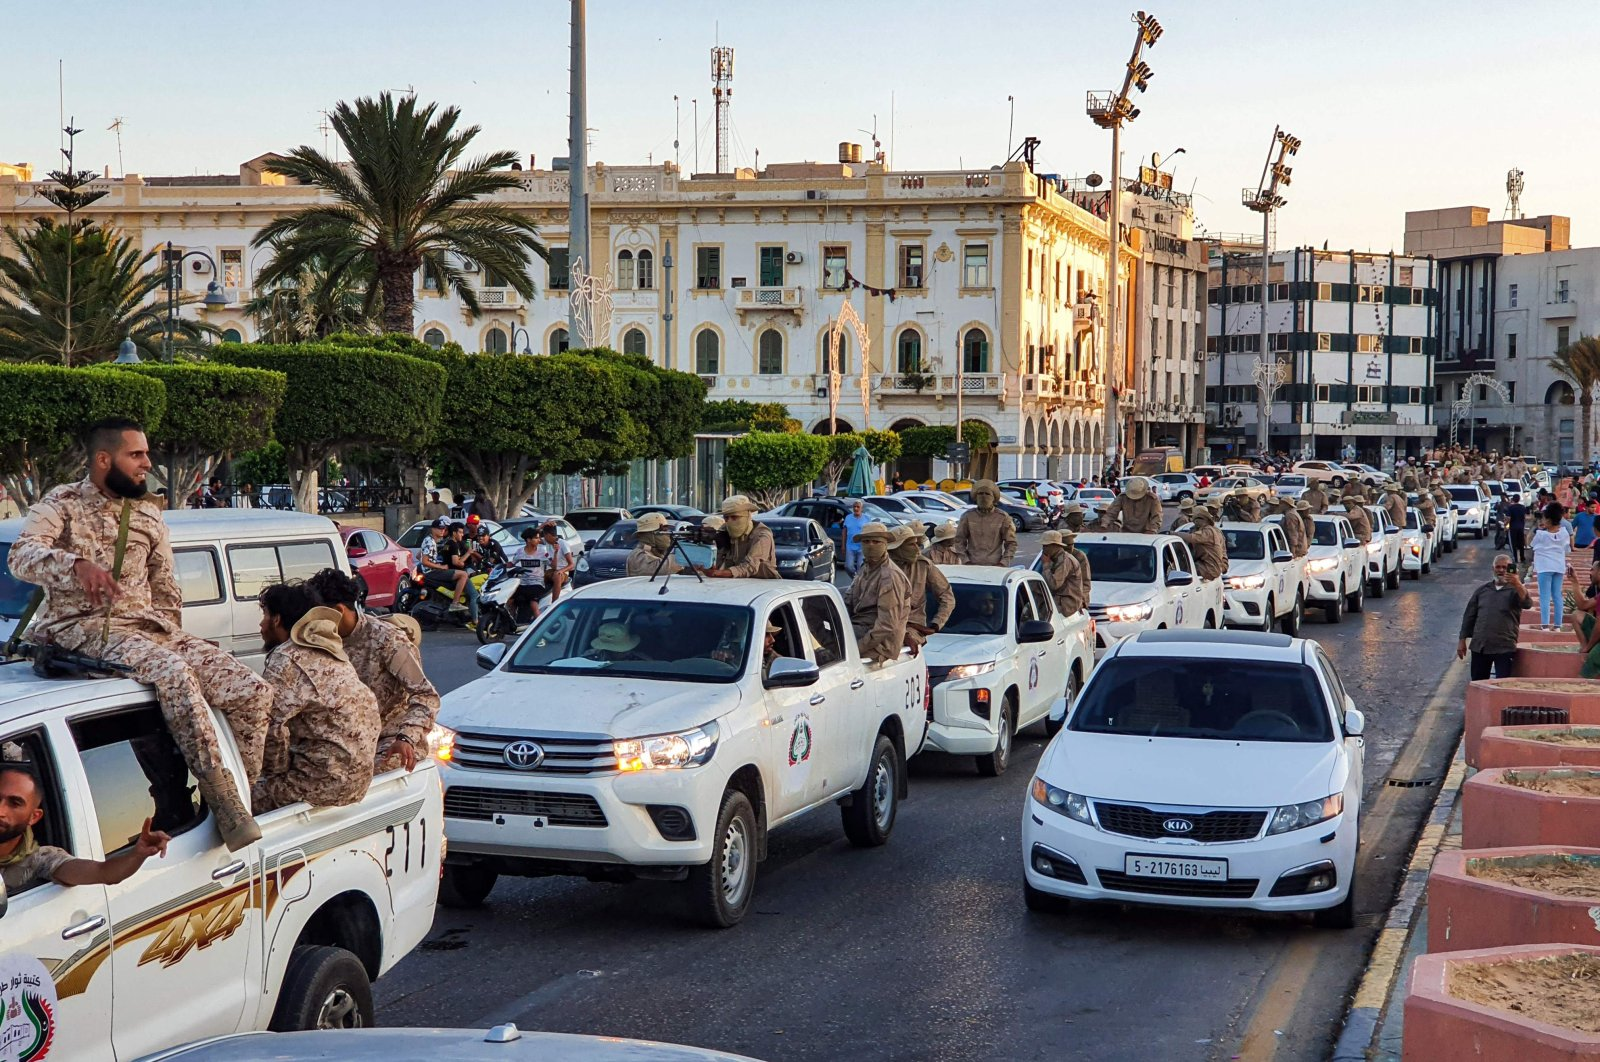 Vehicles of forces loyal to the U.N.-recognized Government of National Accord (GNA) parade through Martyrs' Square in the center of the capital Tripoli, Libya, July 10, 2020. (AFP Photo)